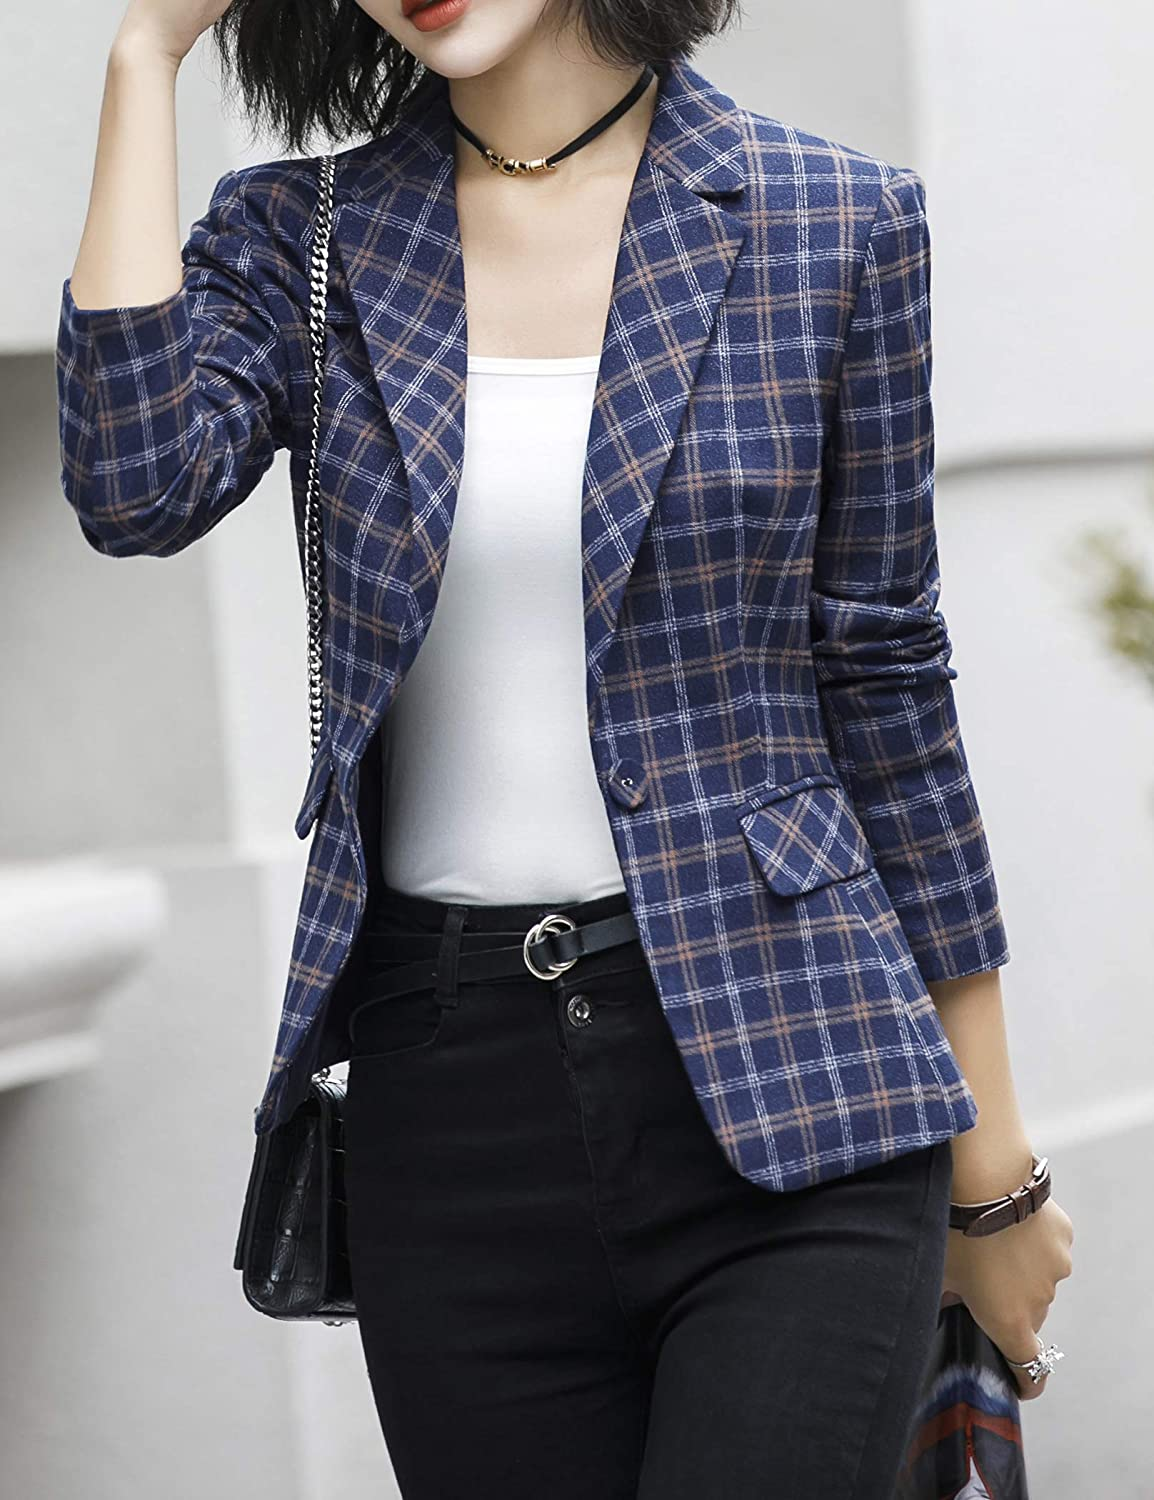 Long Sleeves Jacket Suit Top One Button Office Cardigan Casual Plaid Blazers ZingineW Womens Blazer 3//4